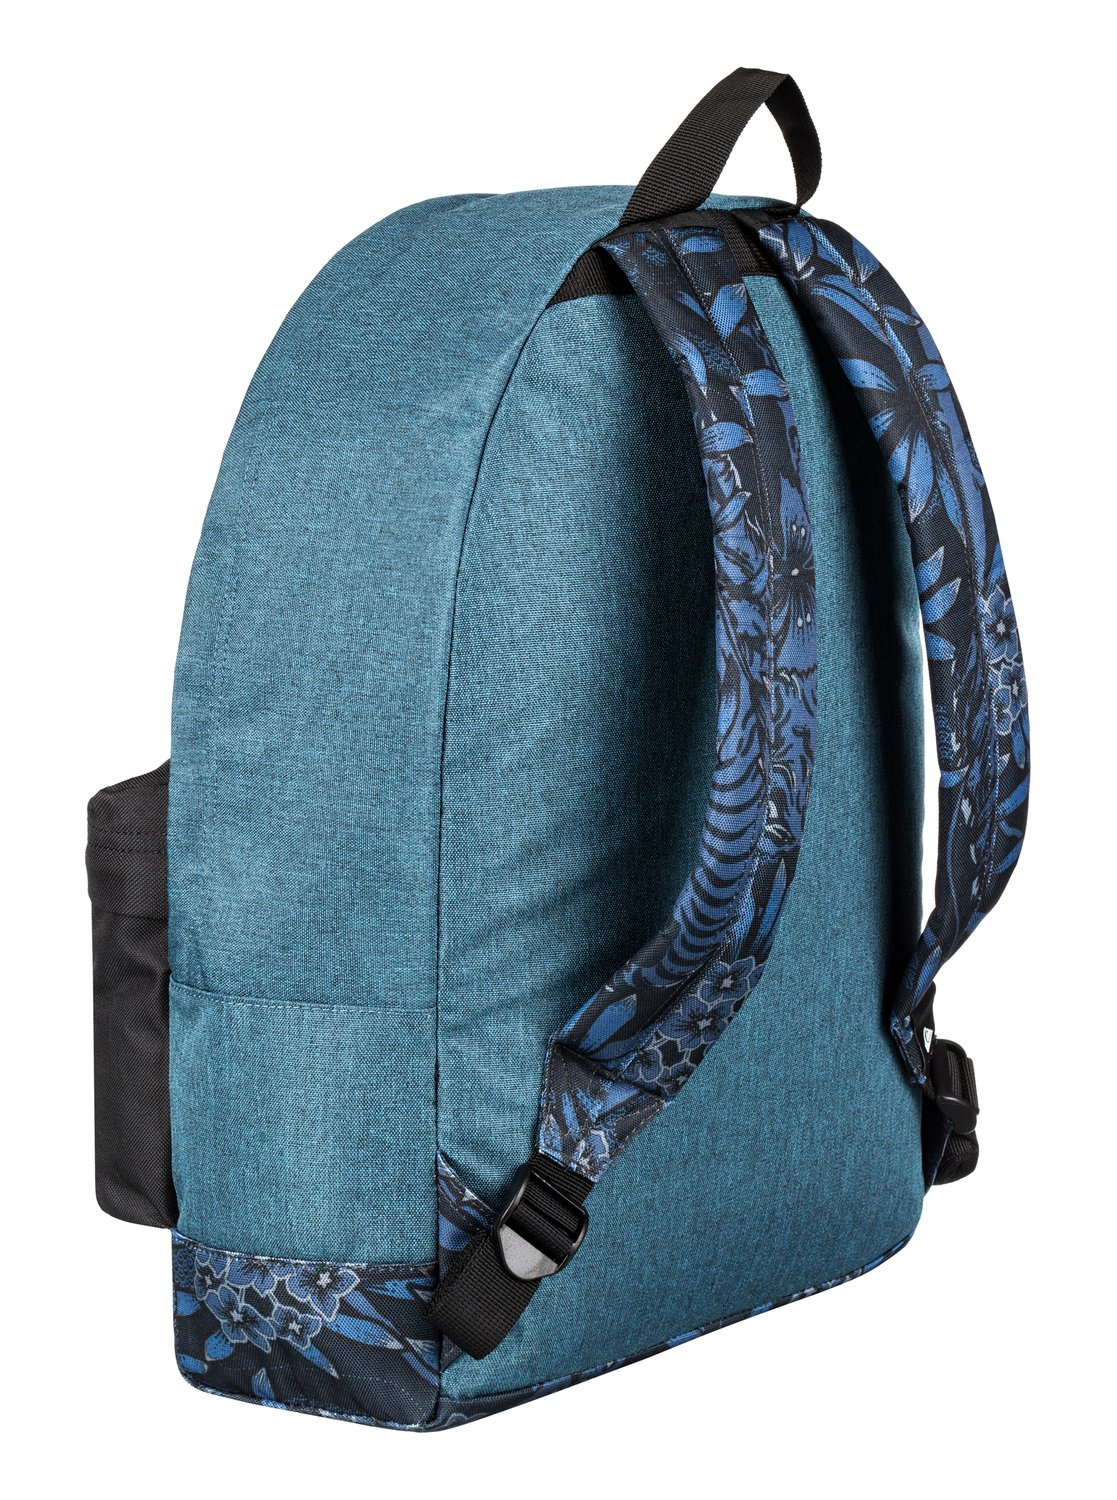 Quiksilver-Everyday-Poster-25L-Sac-a-dos-taille-moyenne-Homme miniature 14